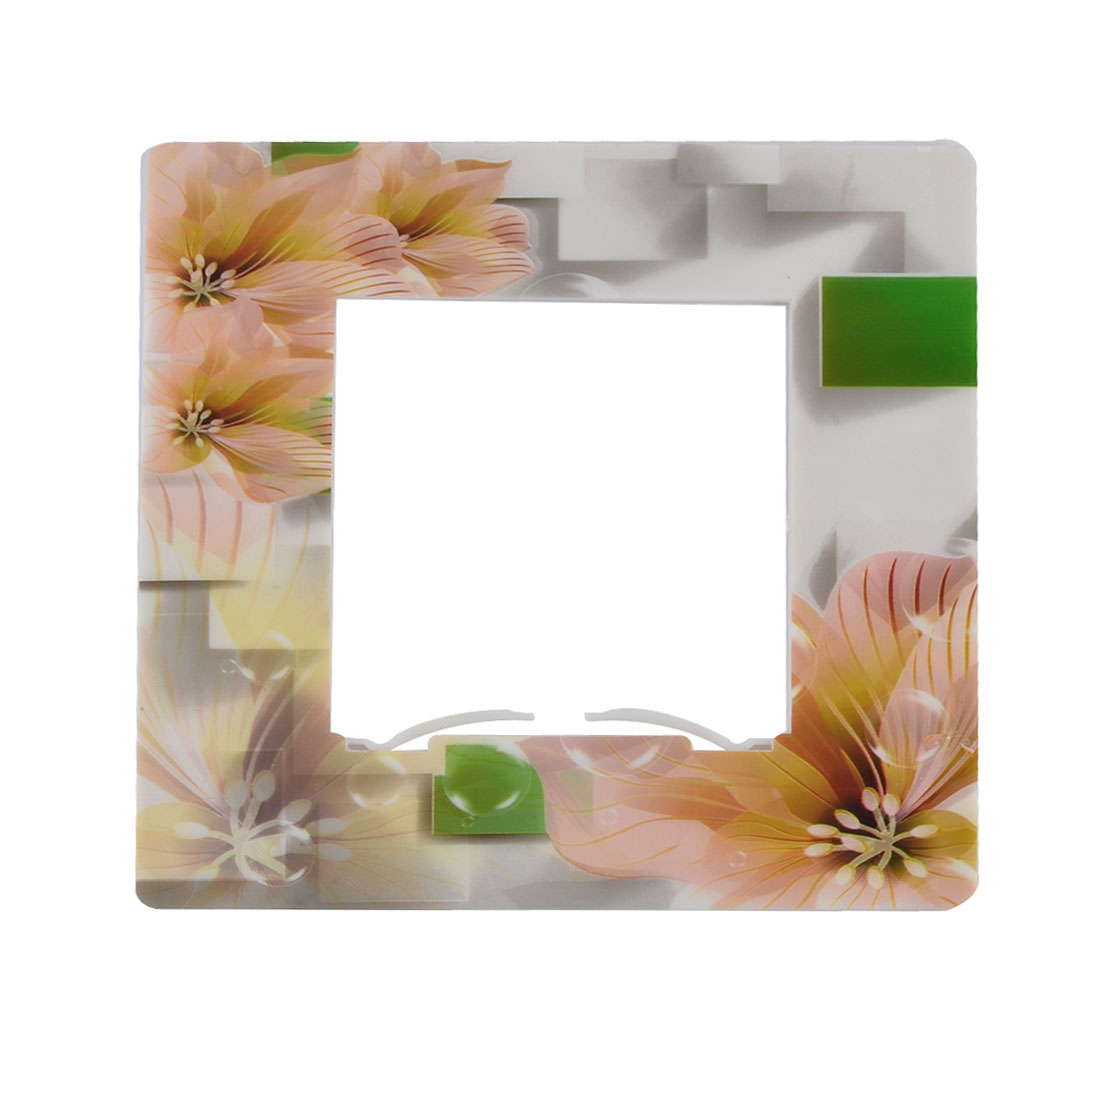 Plastic Floral Printed Square Shape Creative Light Switch Socket Cover Plate